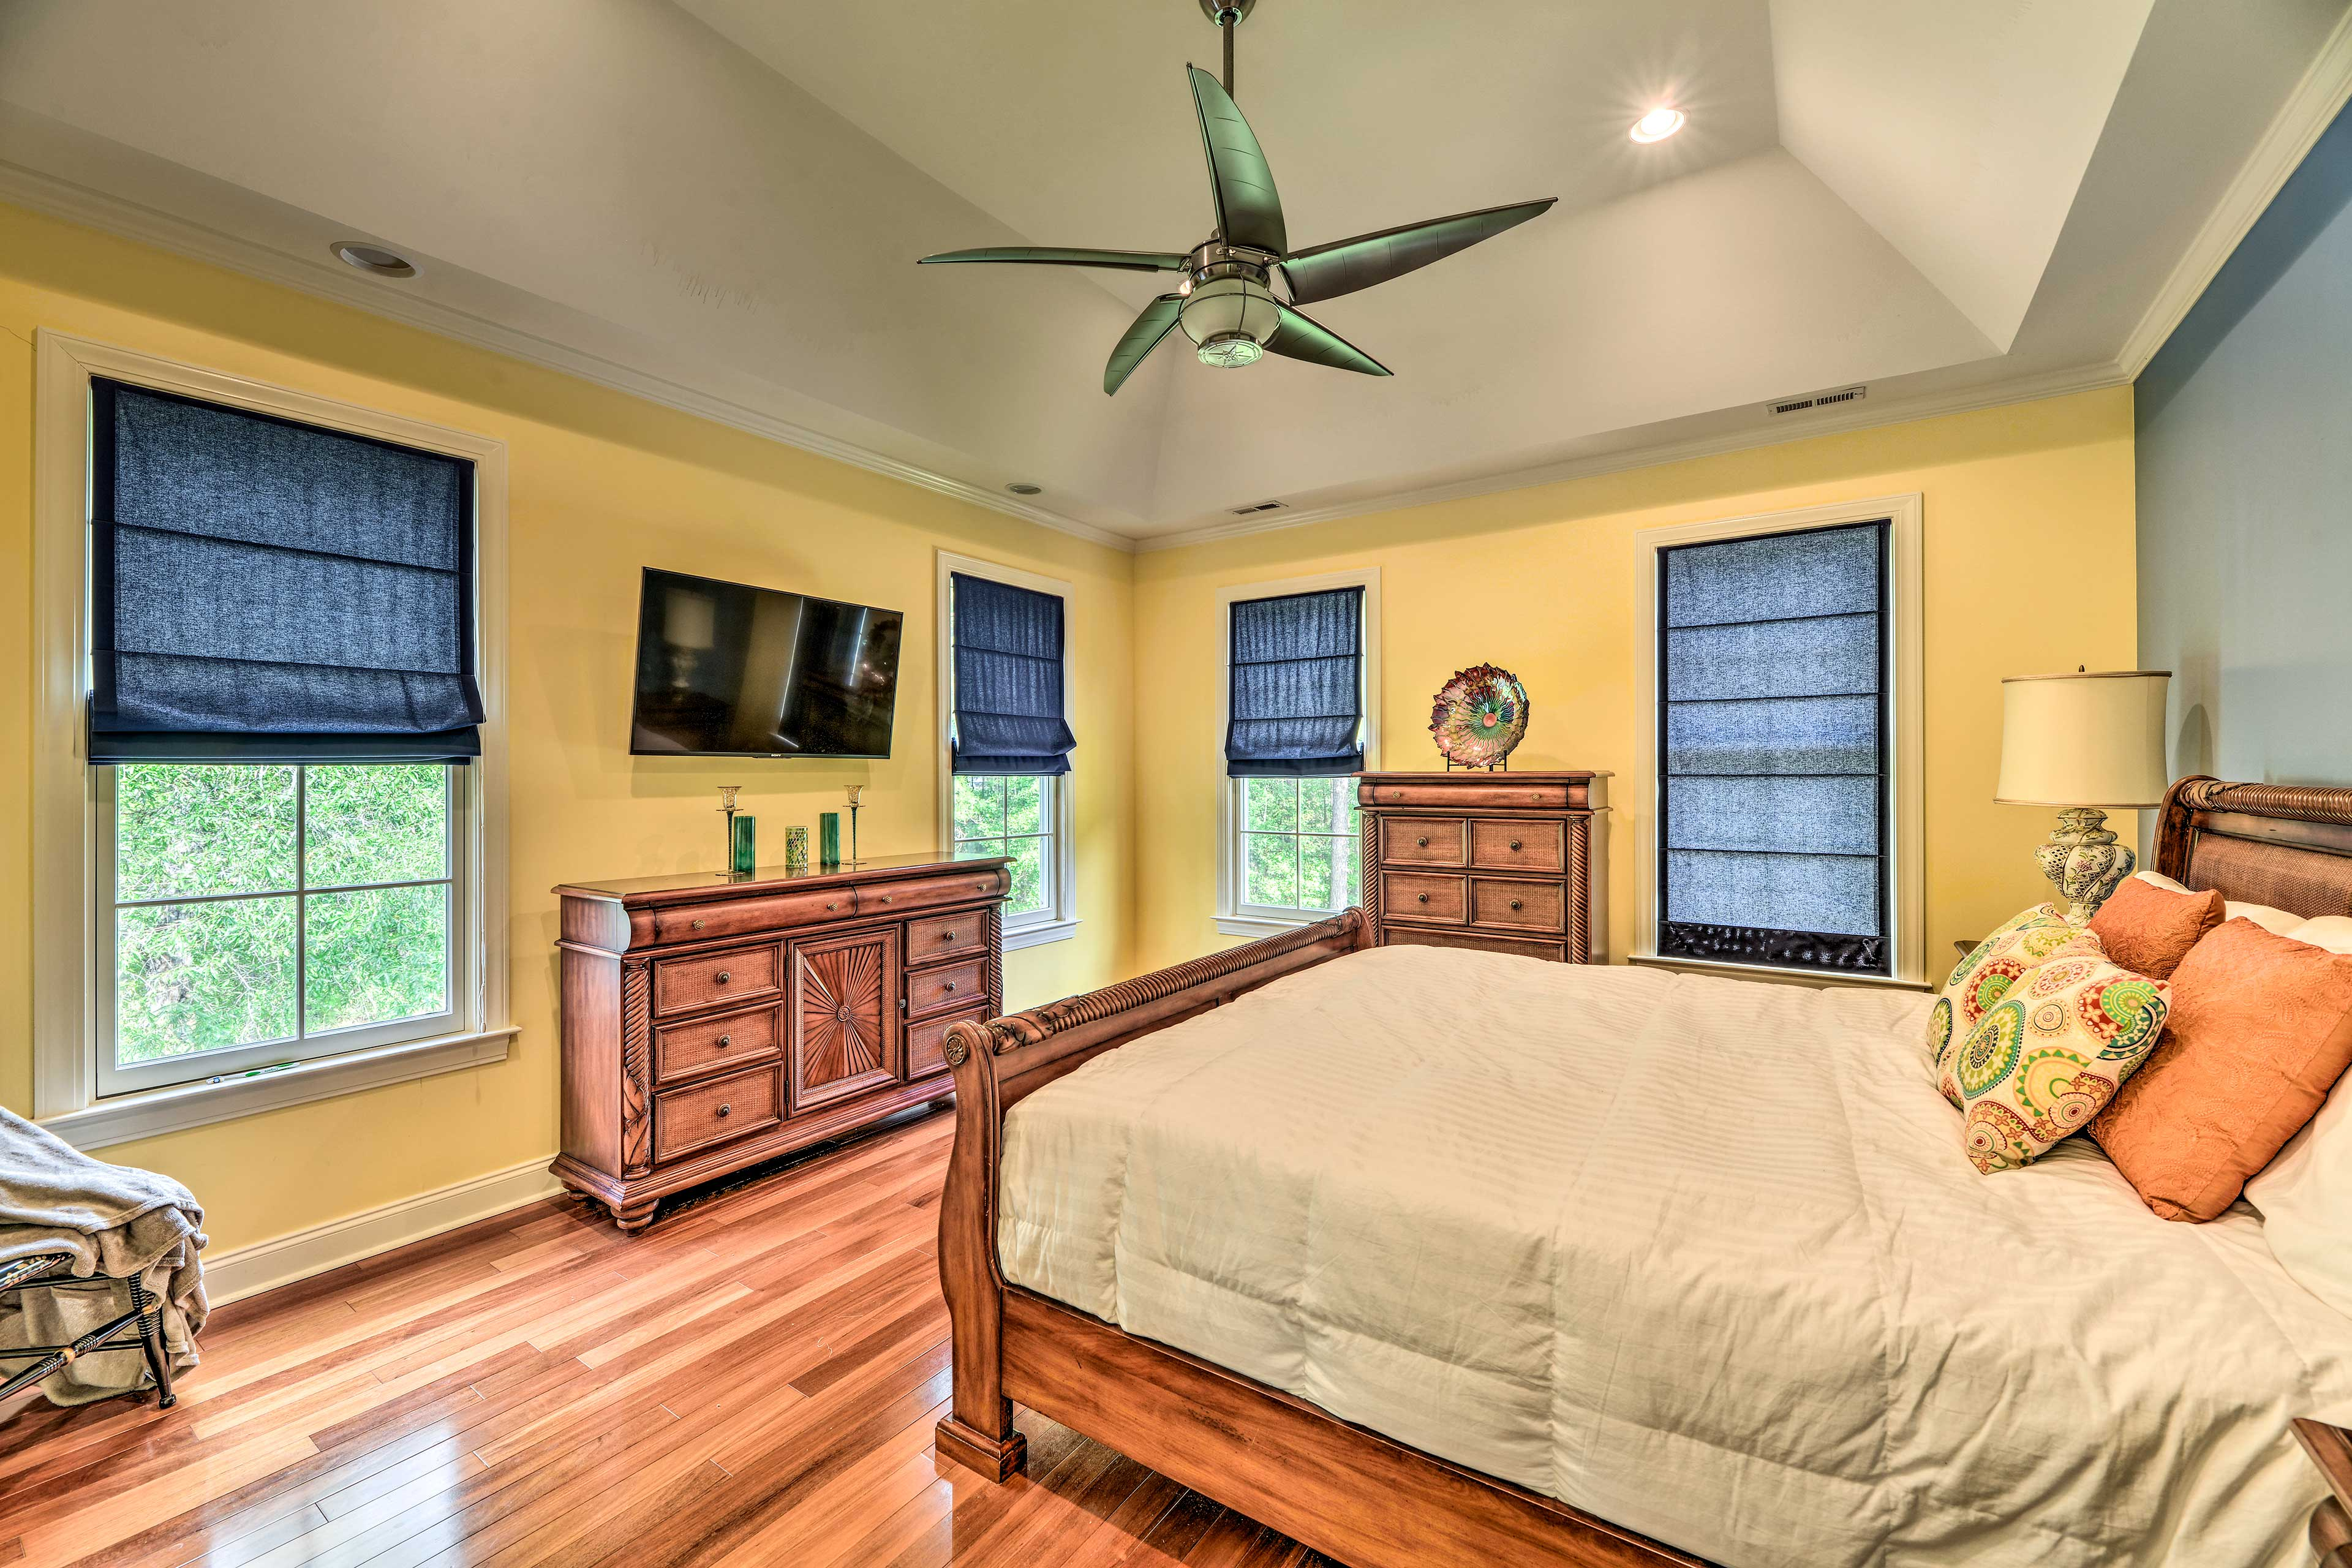 This bedroom also has a king bed.